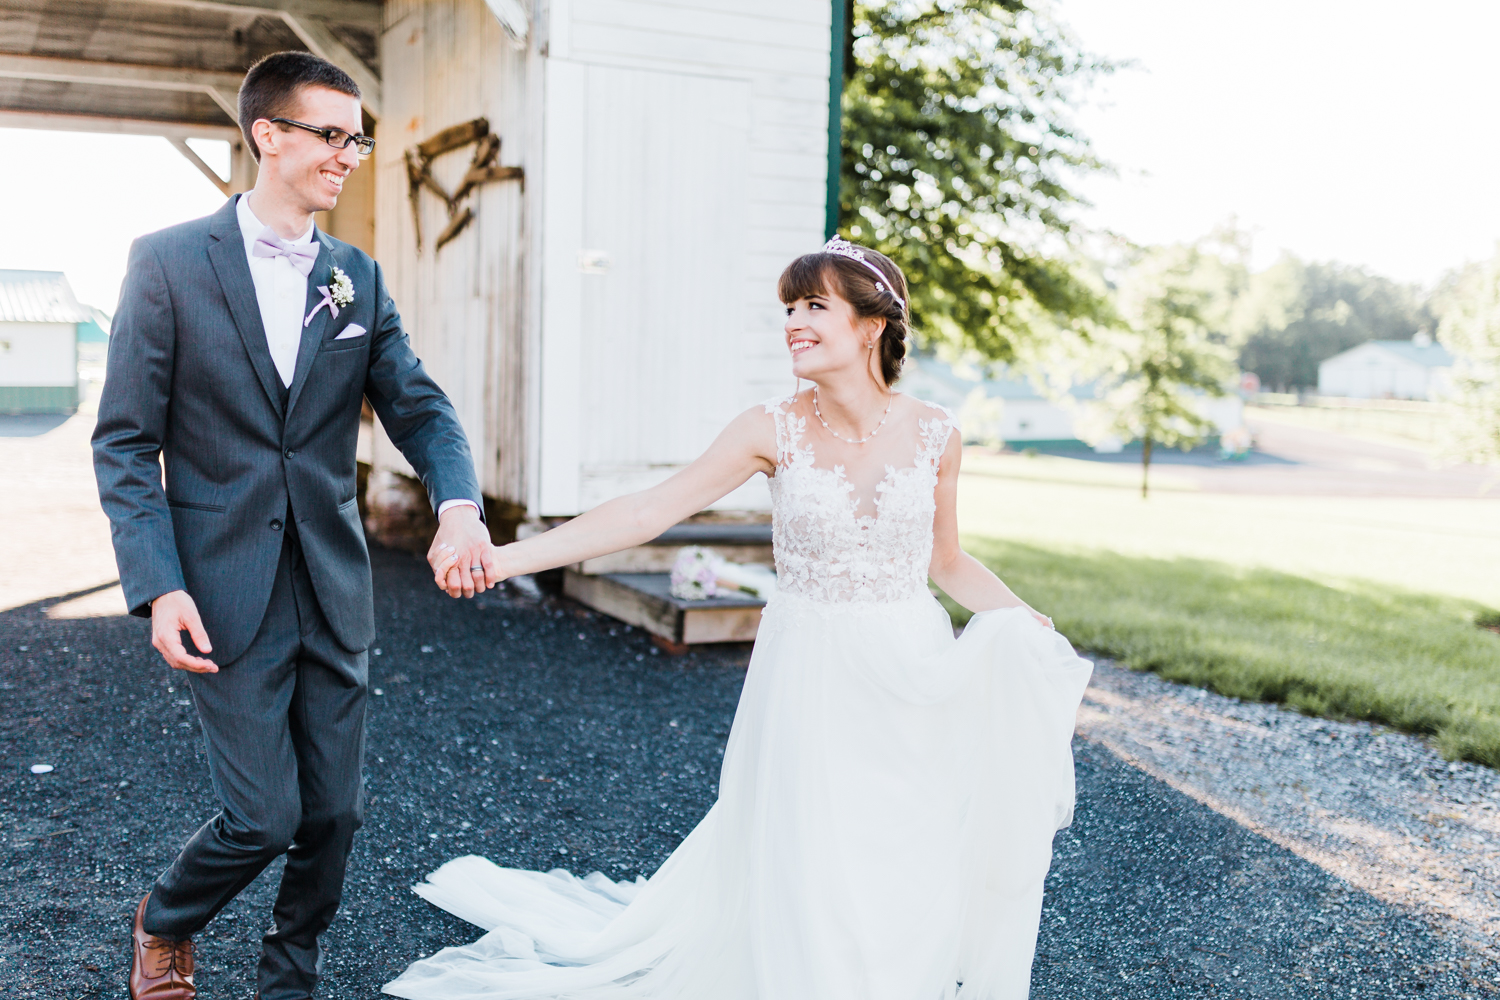 bride and groom running together and having fun at their rustic maryland wedding - best md wedding photographer